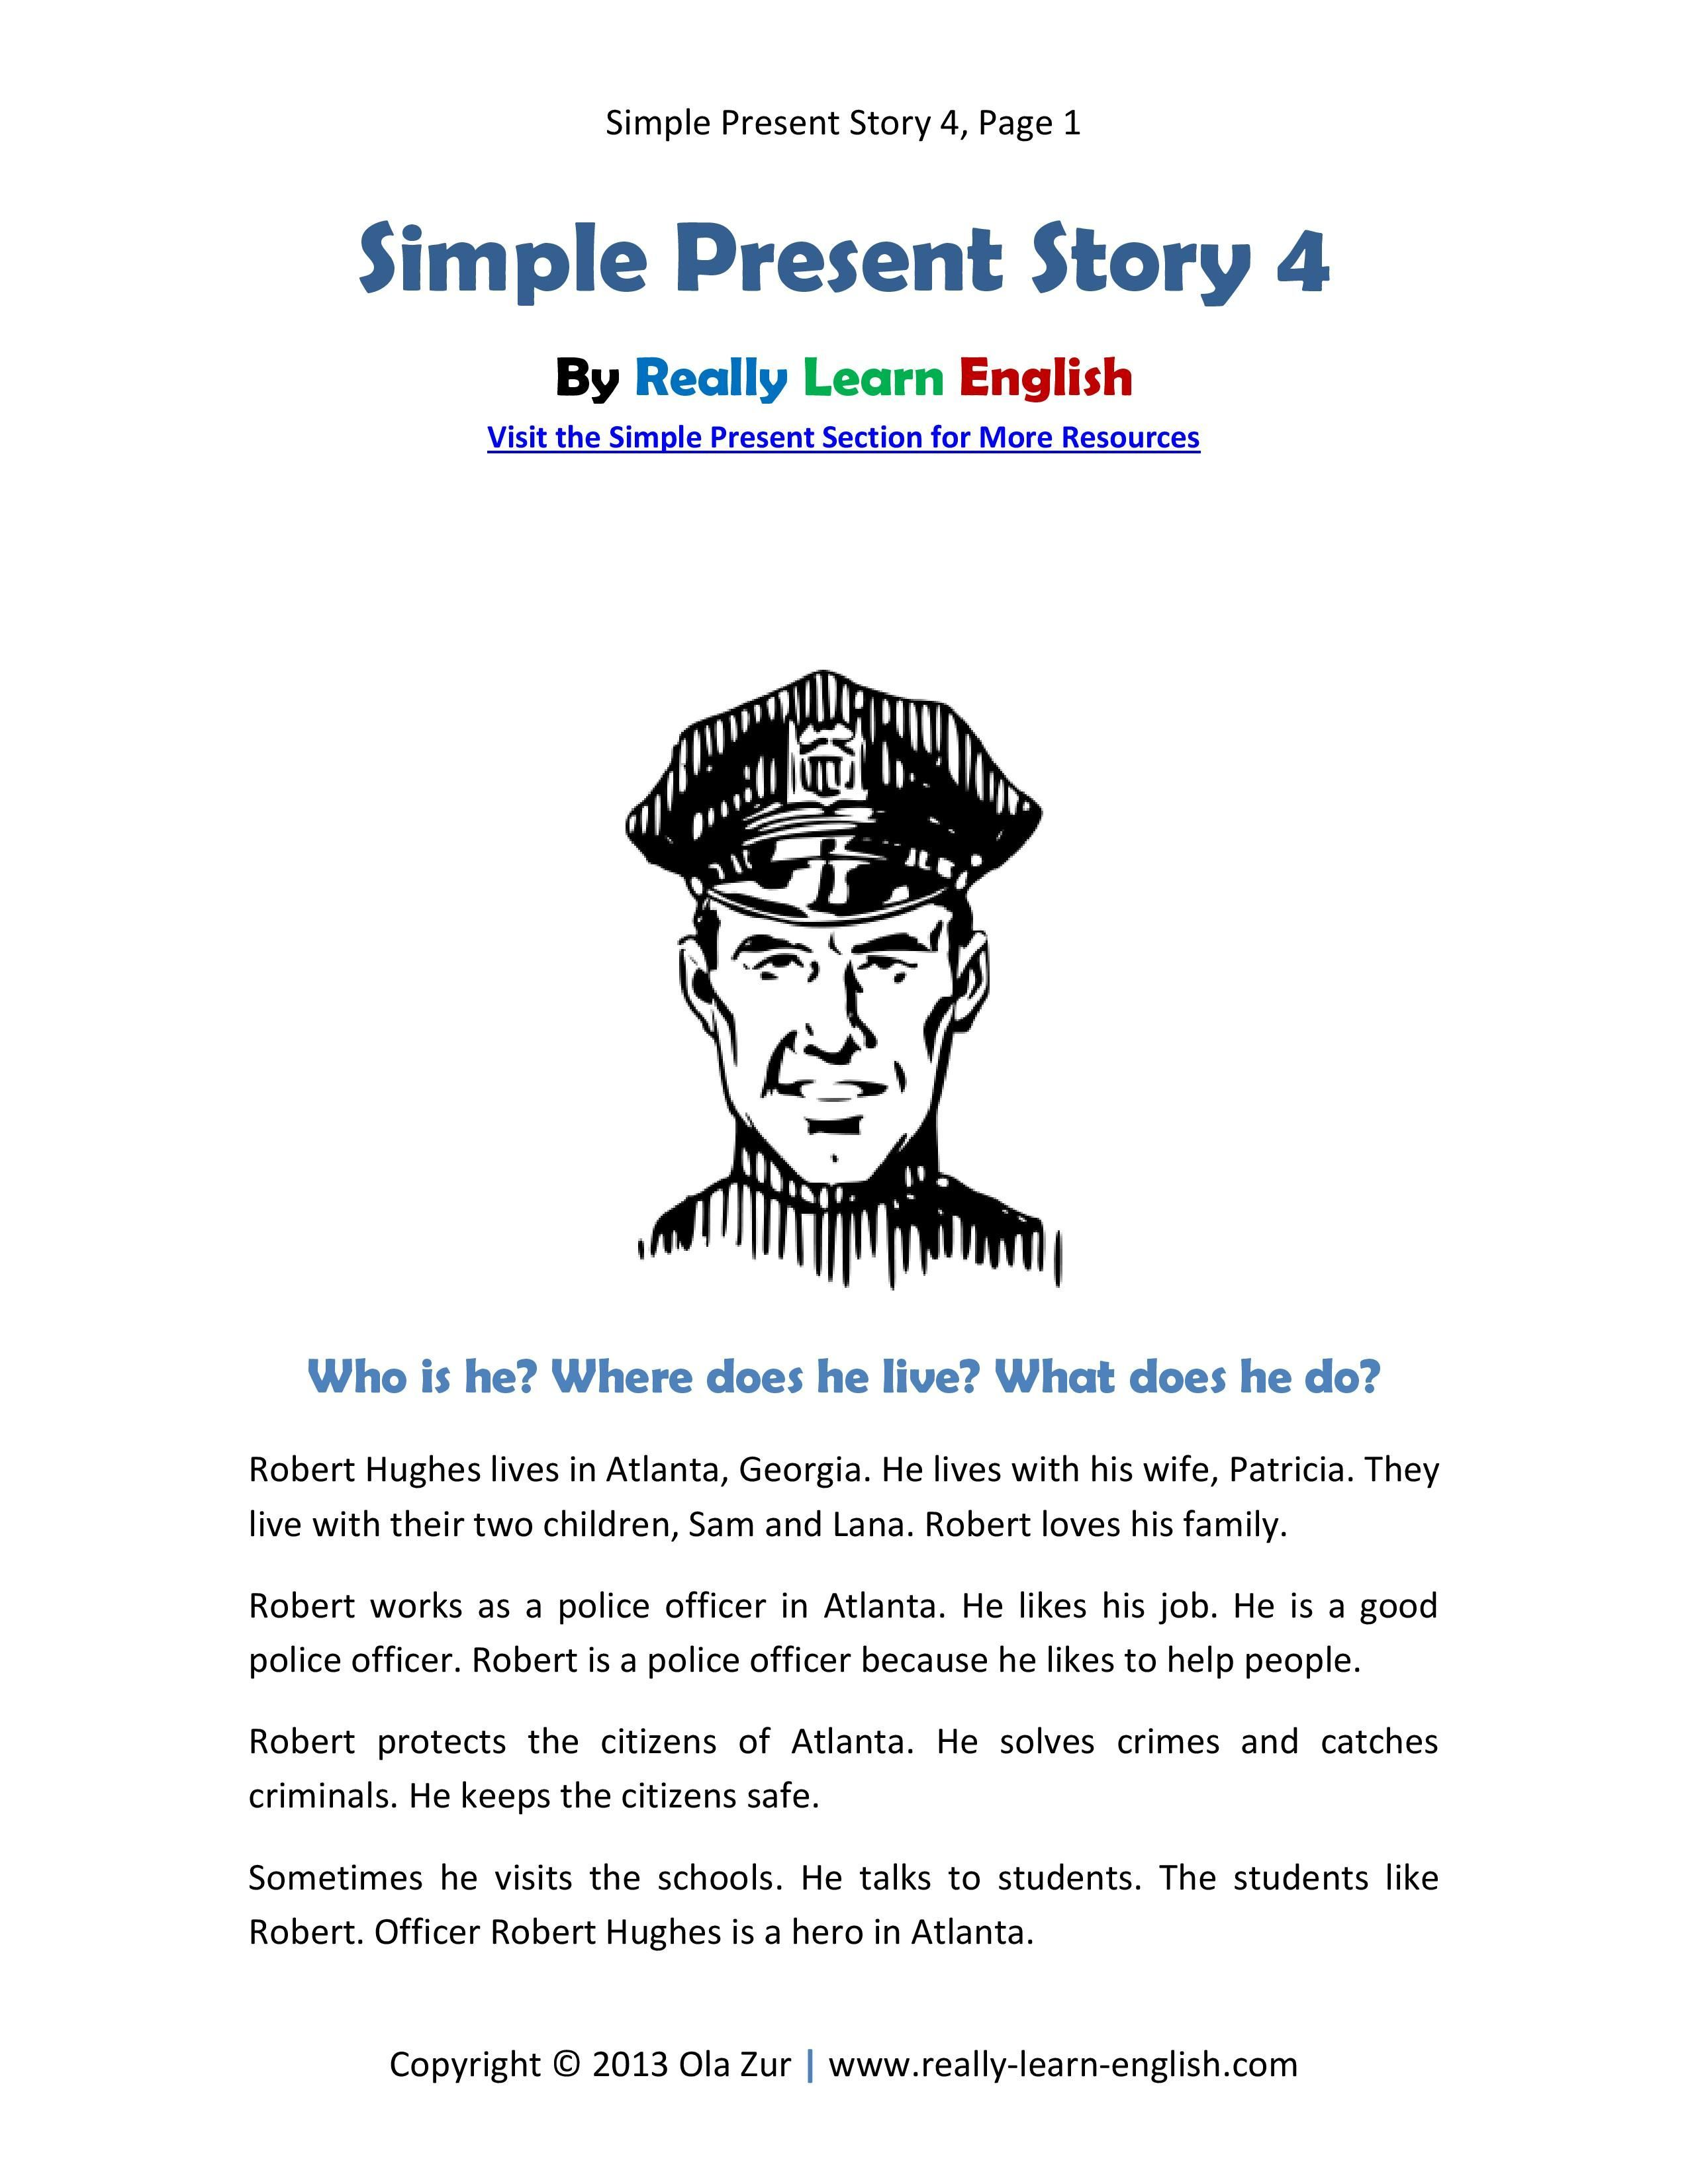 Look A Free Printable English Short Story In The Simple